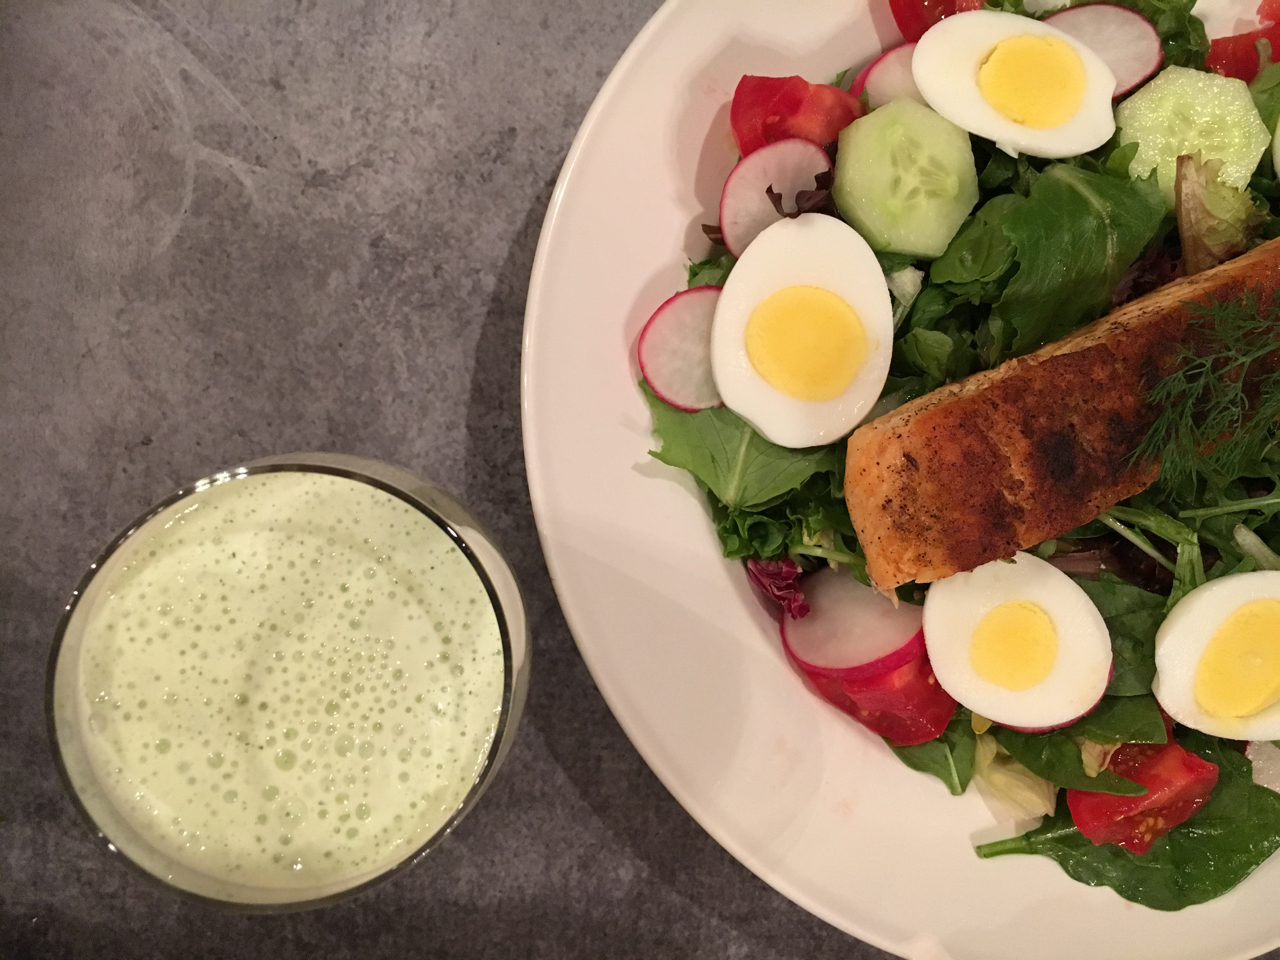 Blackened Salmon Salad With Greek Yogurt Dill Dressing